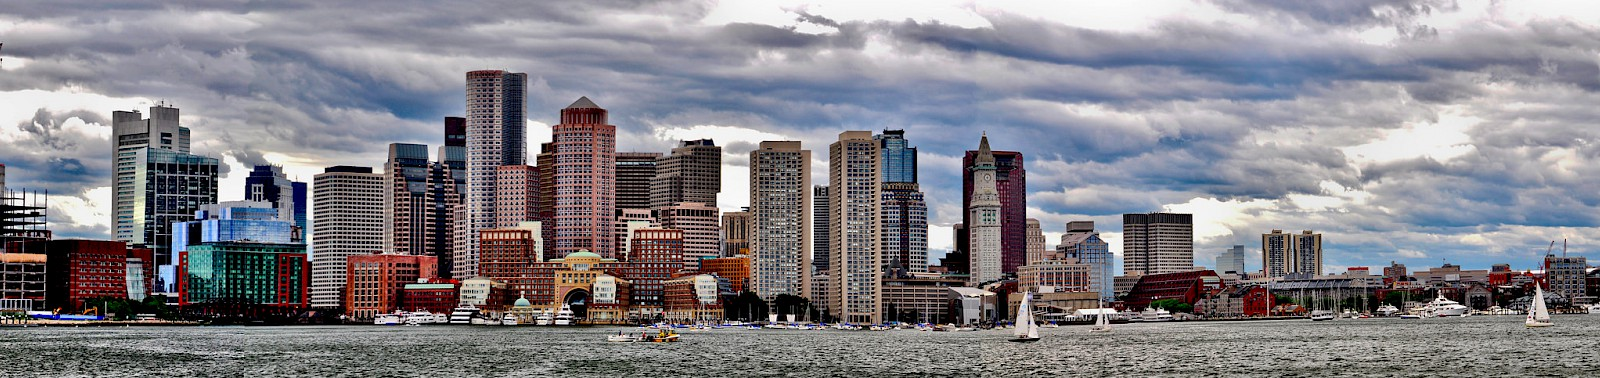 Waterfront, Boston, Massachusetts, Photo by Peter Glenday at [Flickr](https://flic.kr/p/cpb66u)